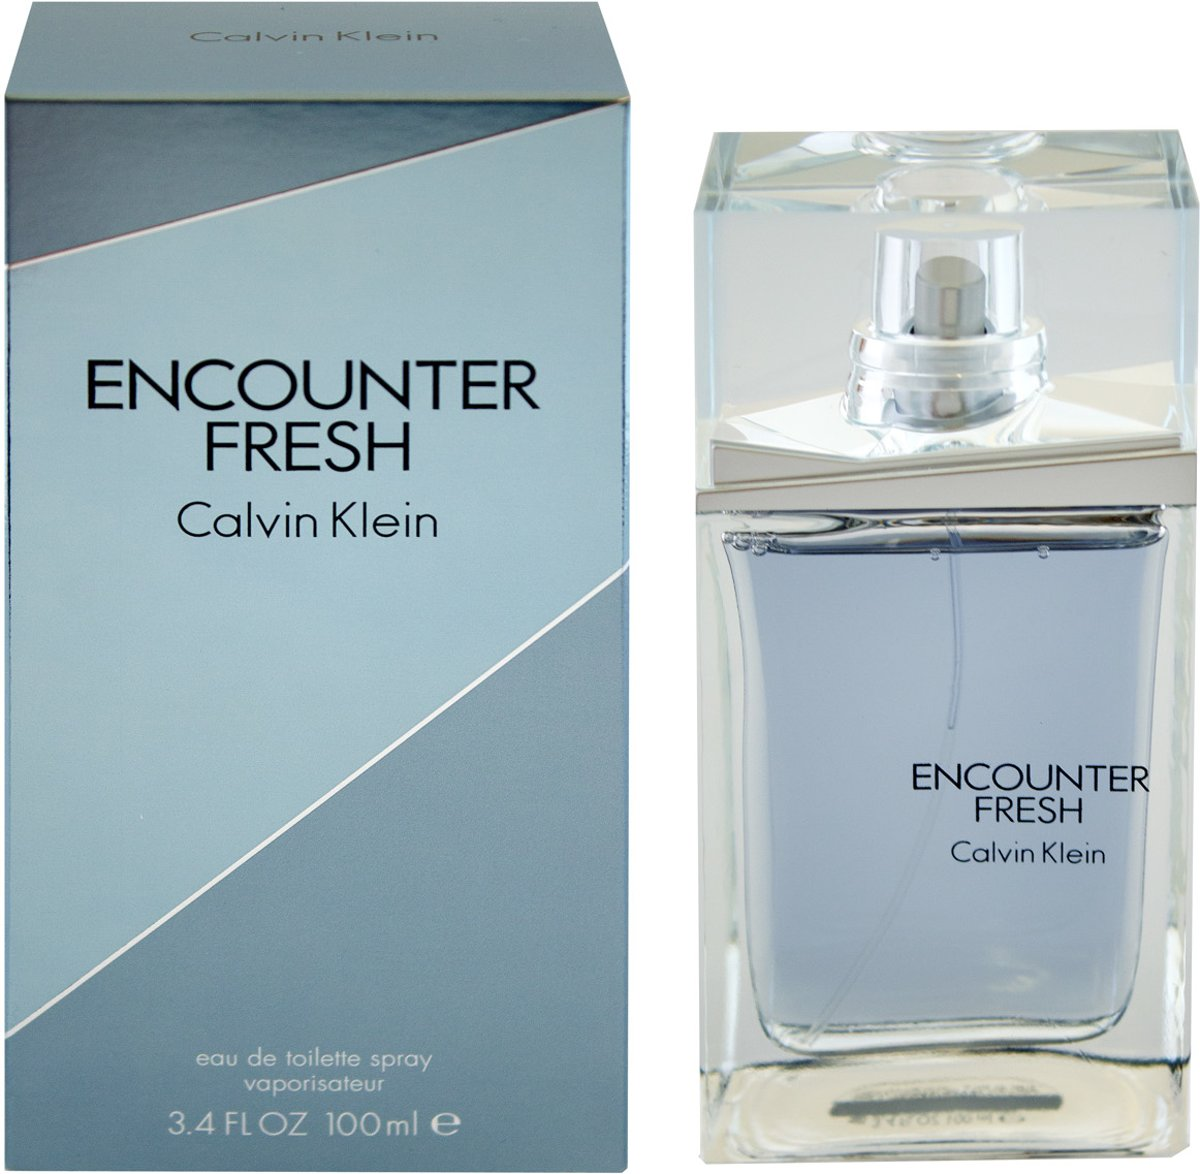 Ck encounter fresh men - 100 ml - Eeau de toilette